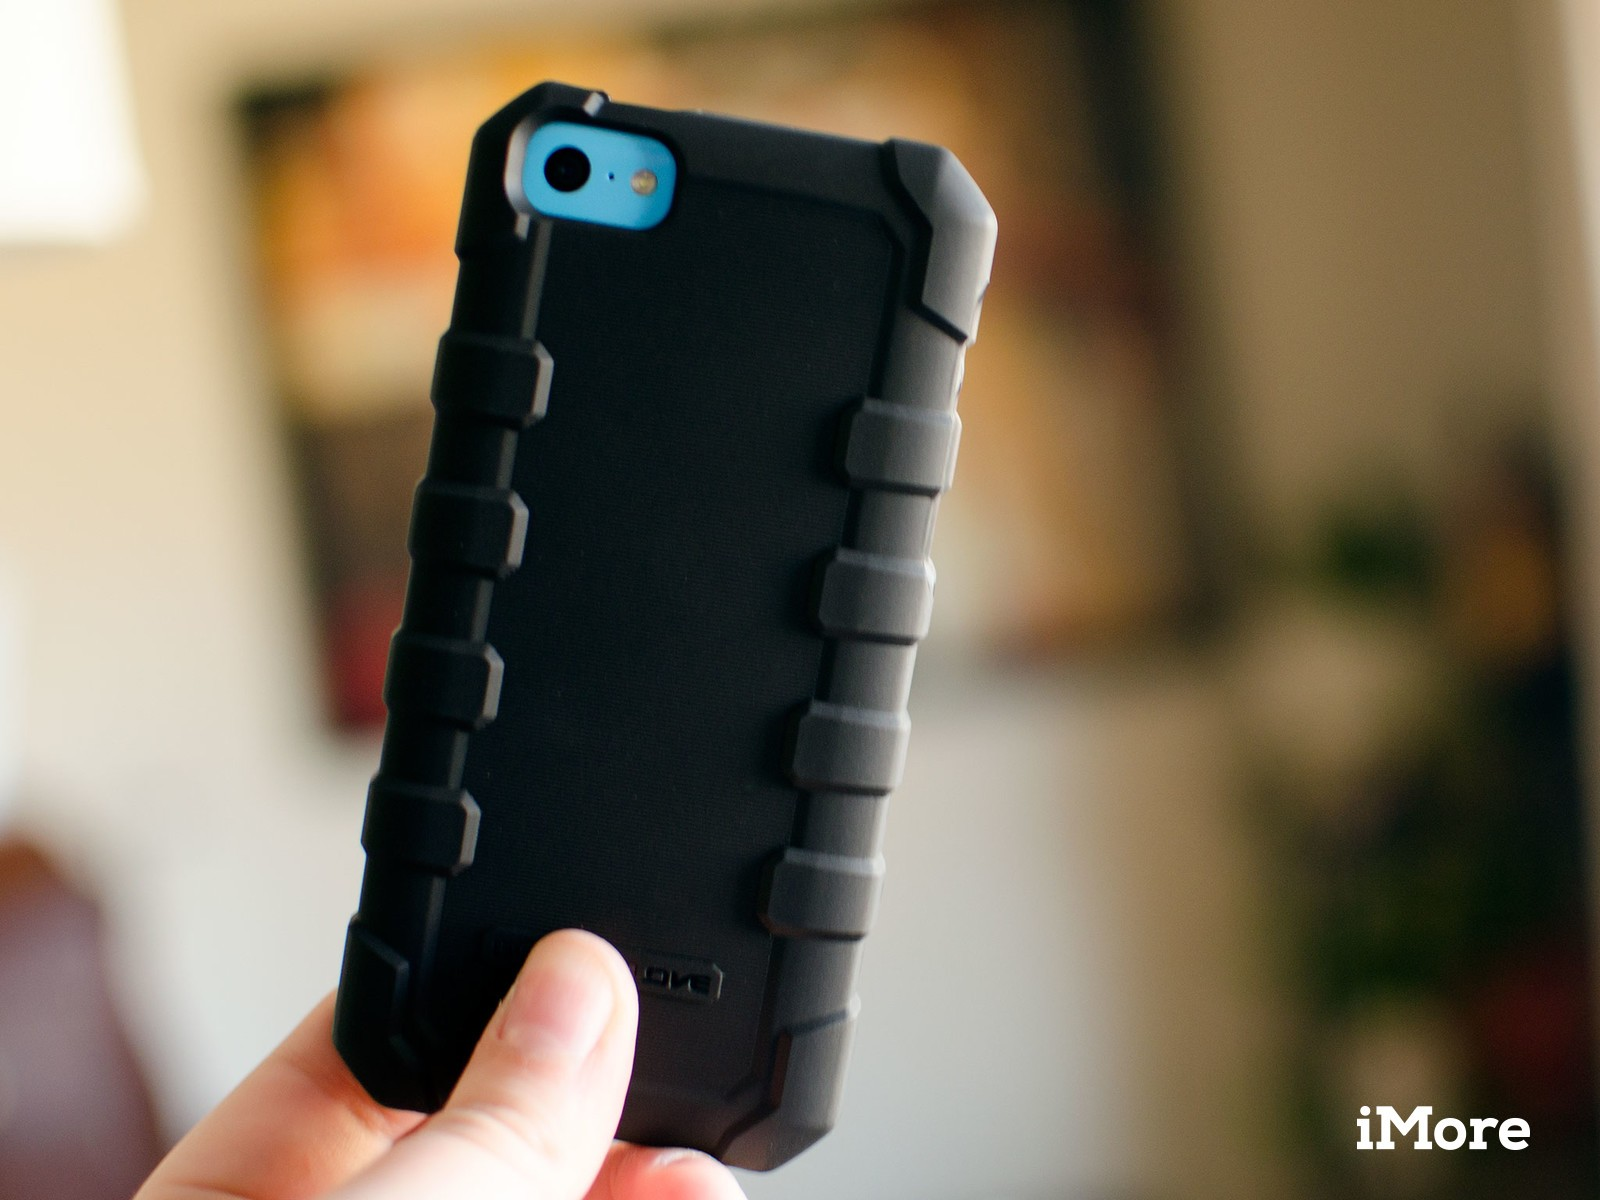 Body Glove DropSuit Rugged Case for iPhone 5c review